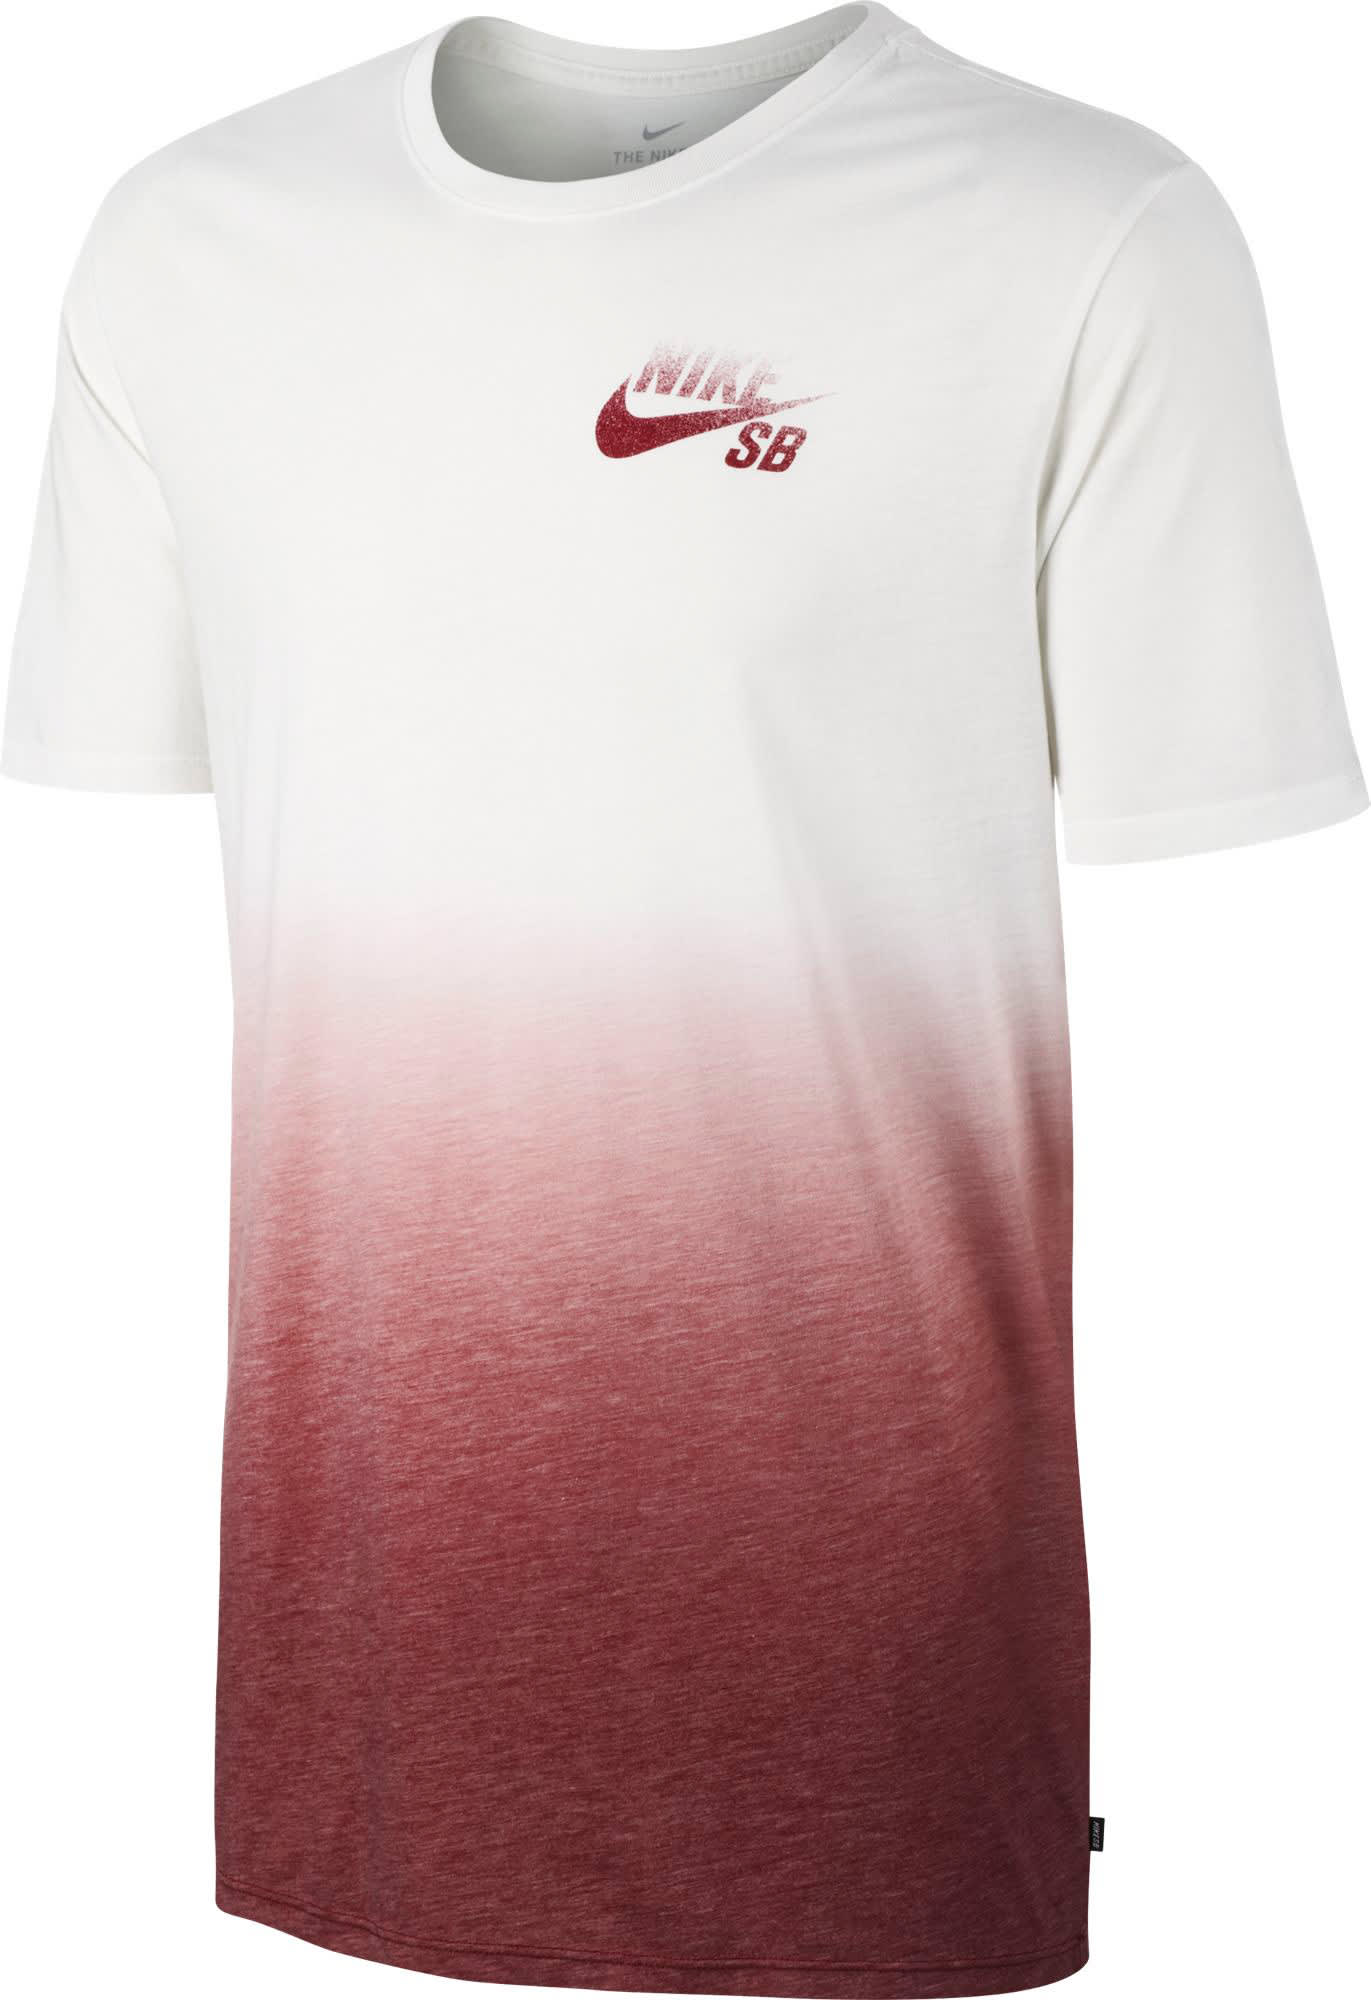 on sale nike sb dry dip dye t shirt up to 40 off. Black Bedroom Furniture Sets. Home Design Ideas